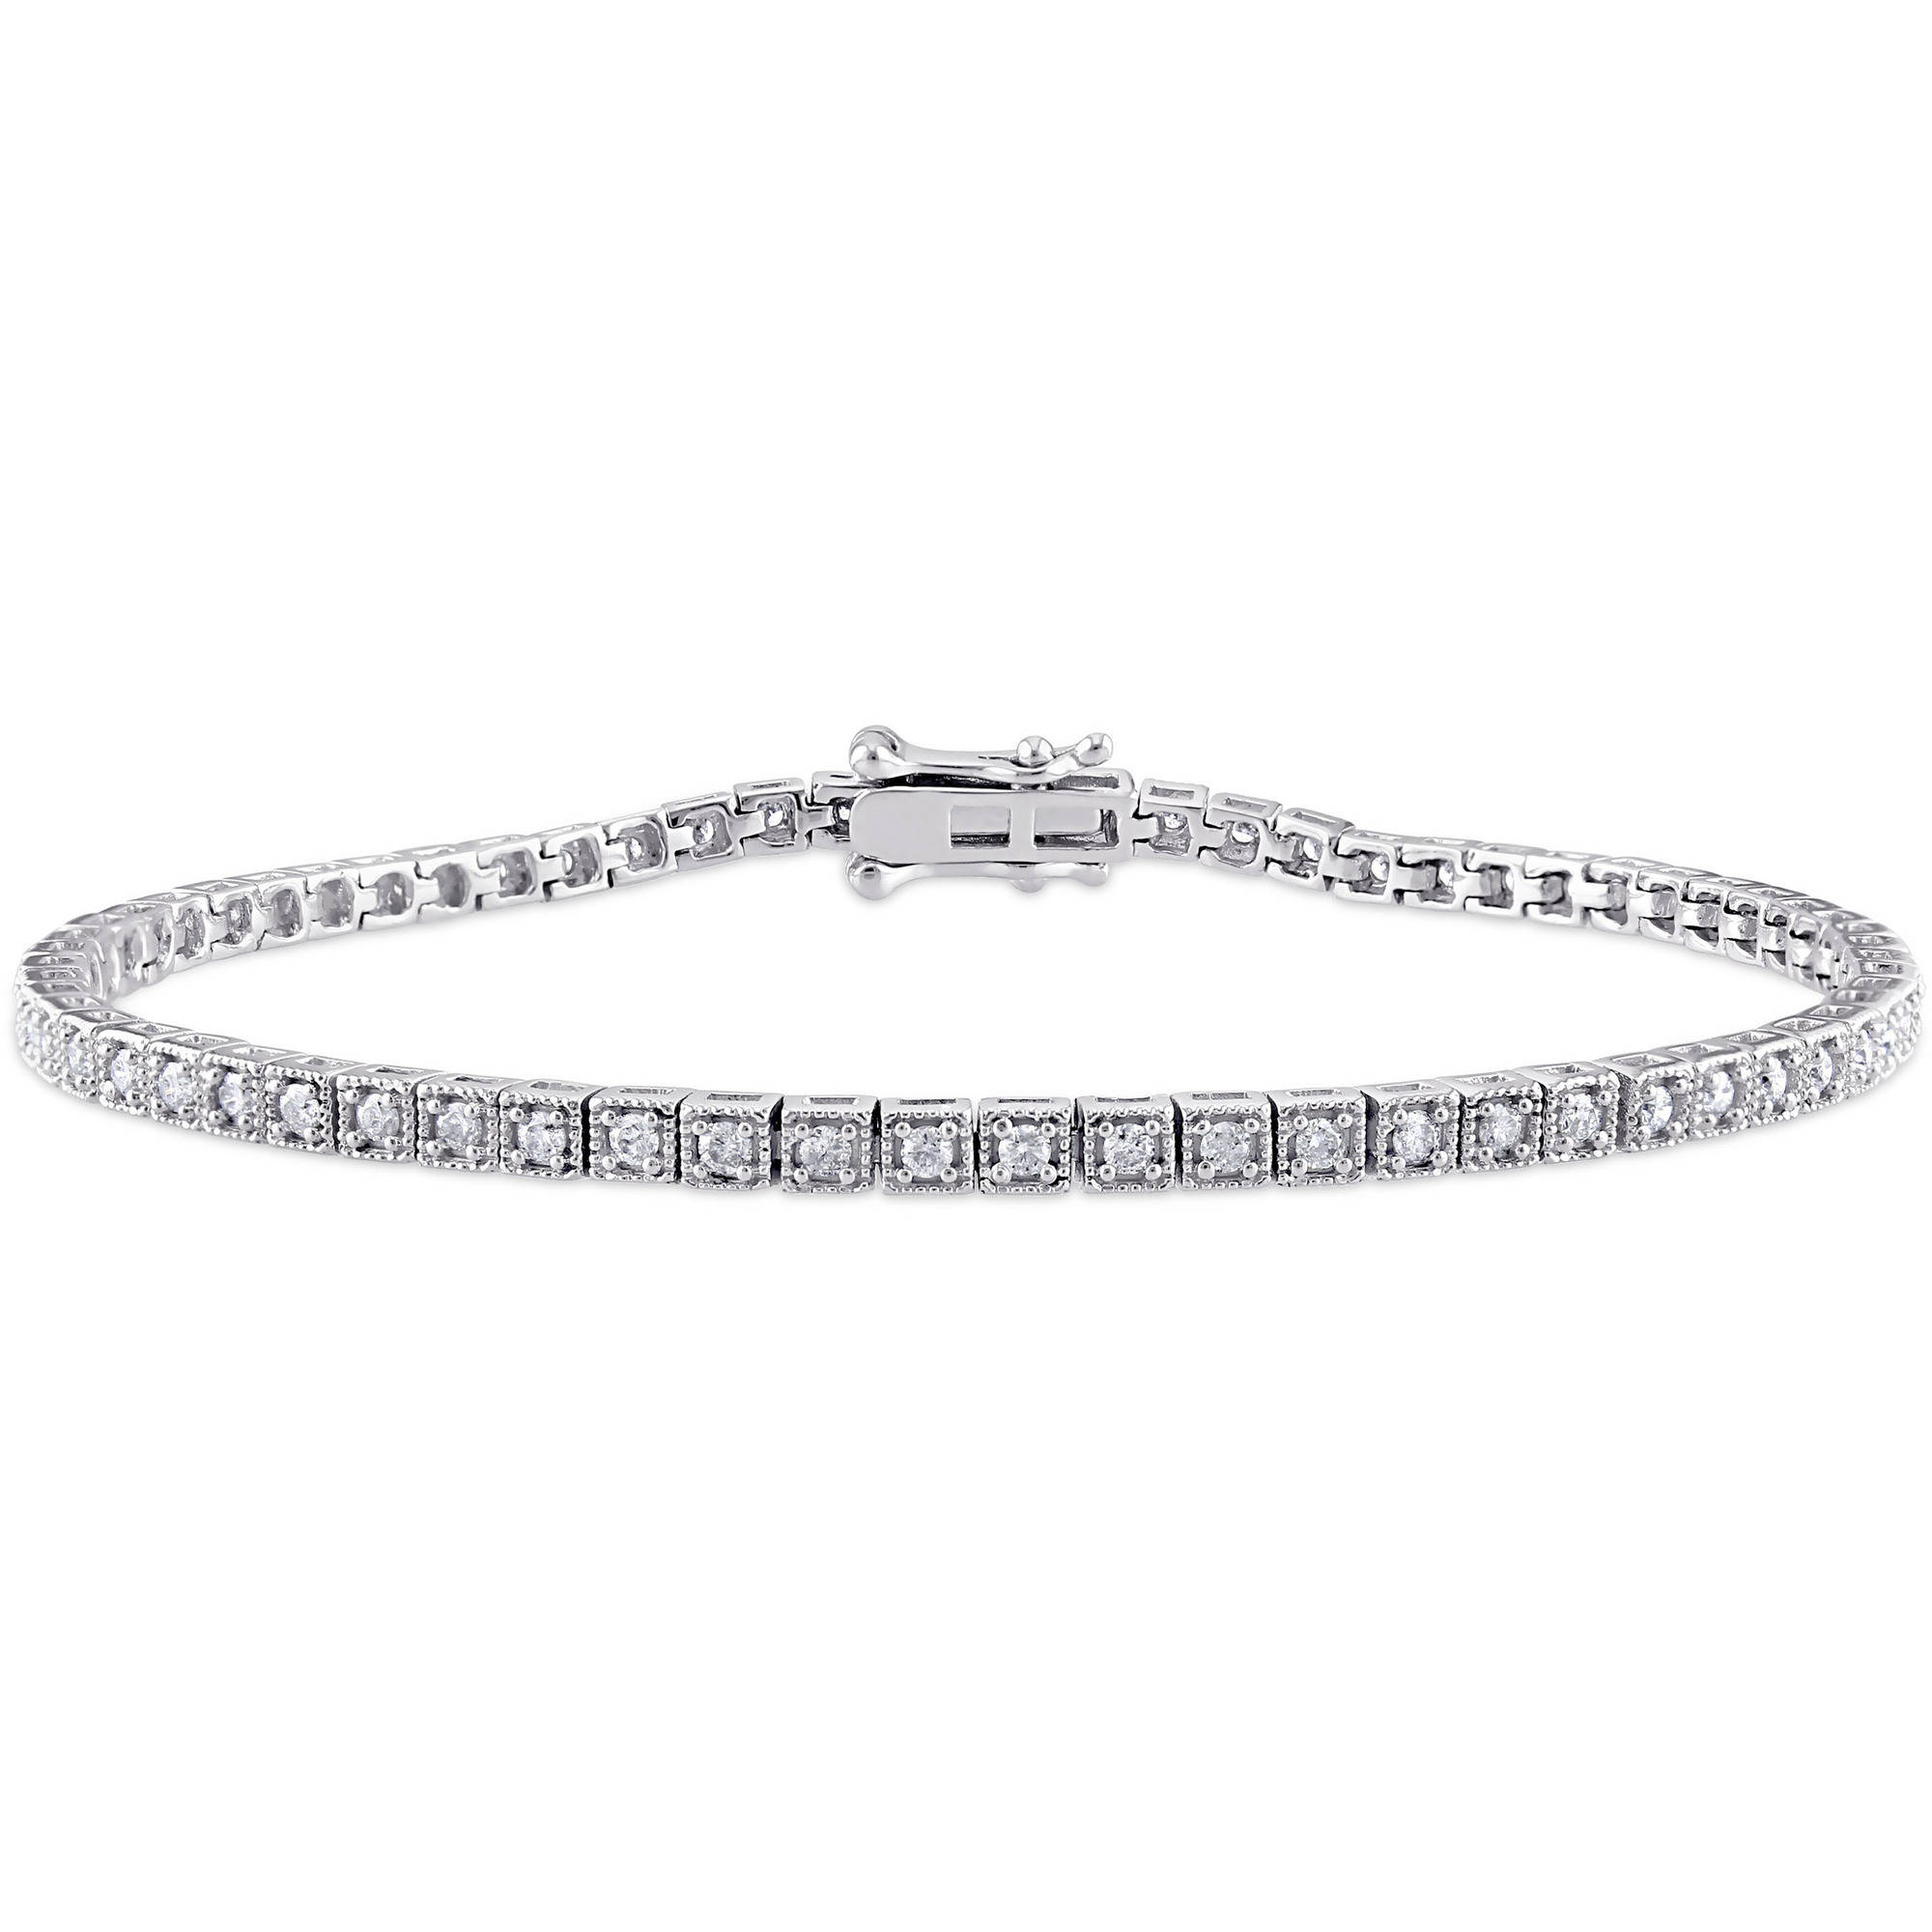 "Miabella 1 Carat T.W. Diamond 10kt White Gold Tennis Bracelet, 7.25"" by Miabella"